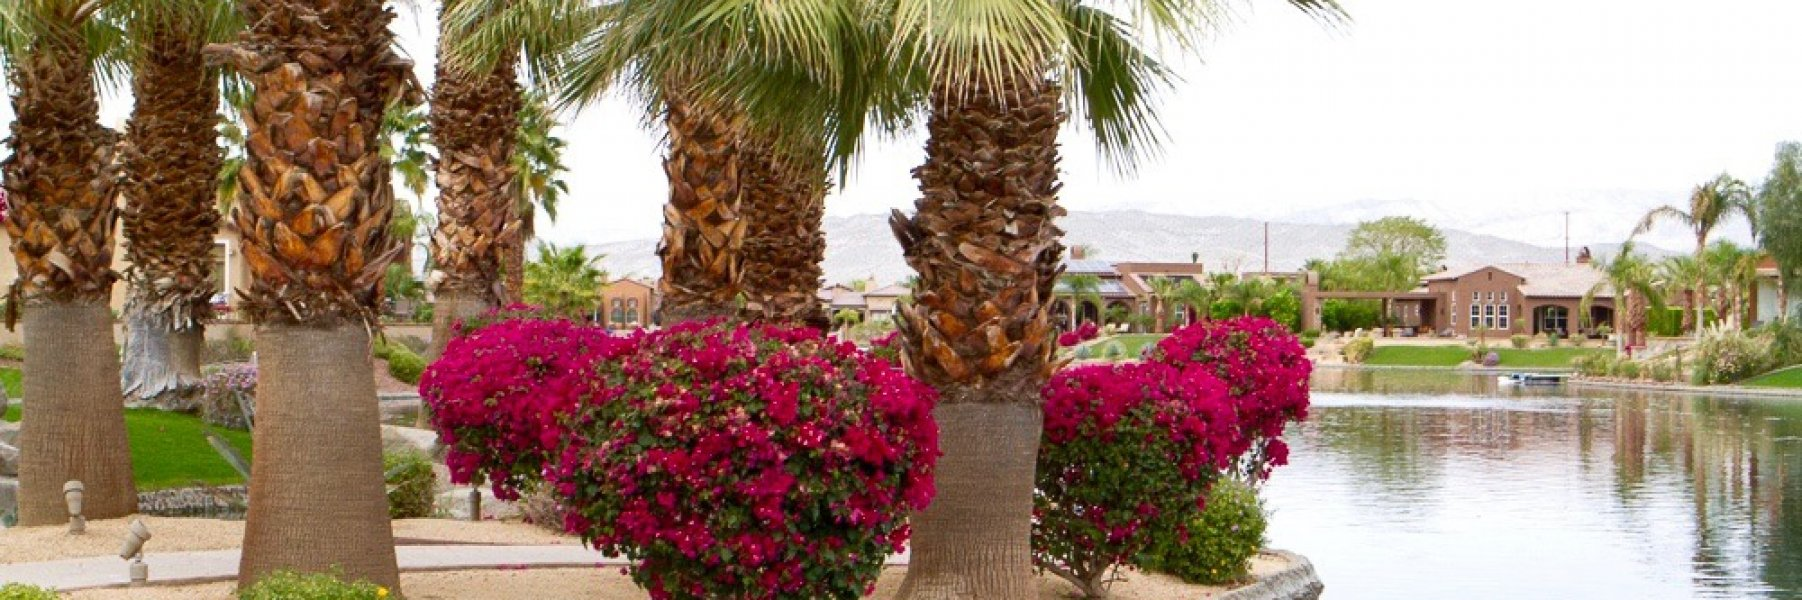 Santo Tomas is a community of homes in Rancho Mirage California